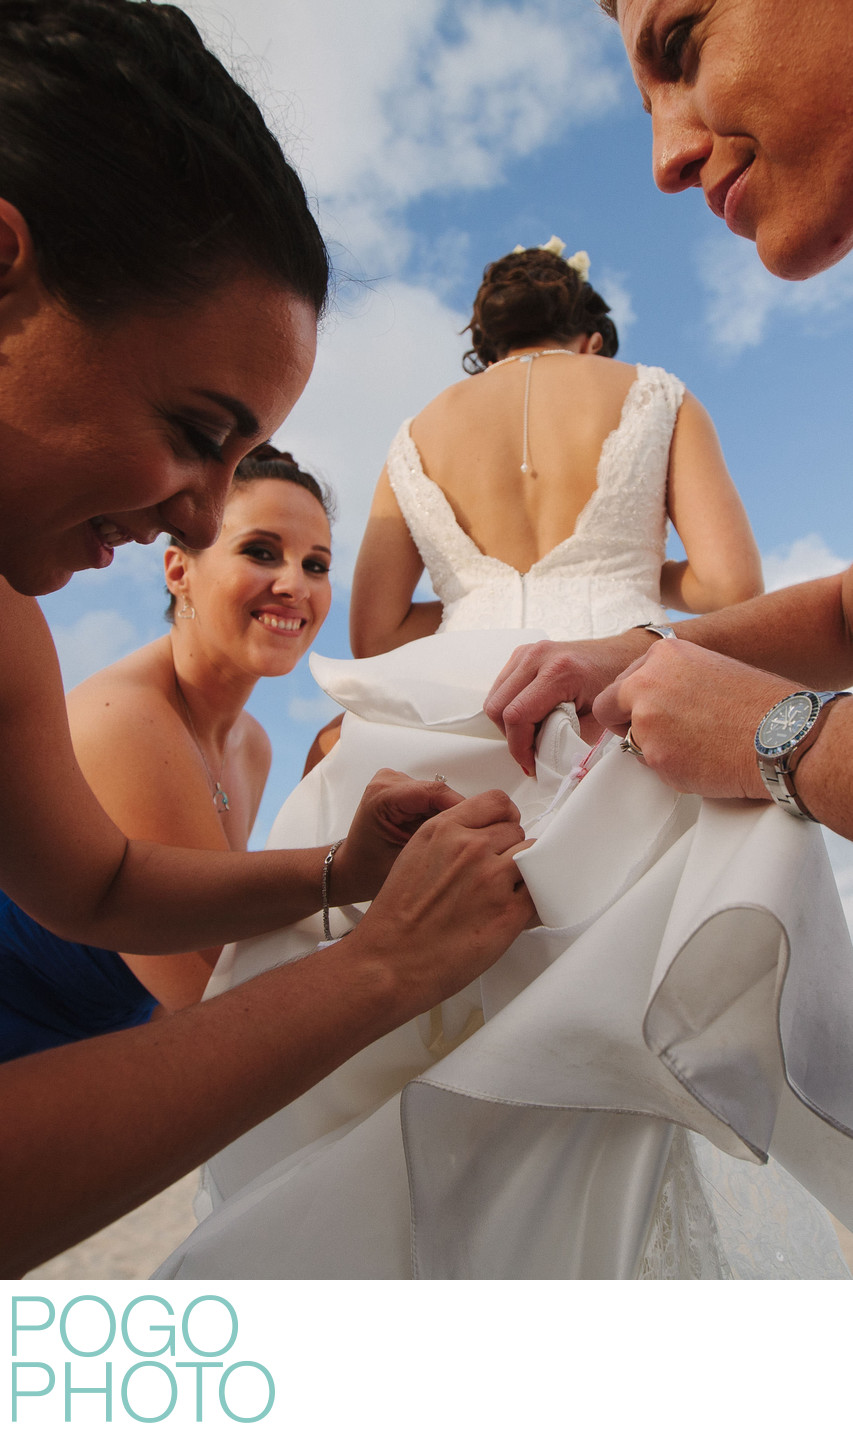 Dress Bustling Bridesmaids at Palm Beach Island Wedding